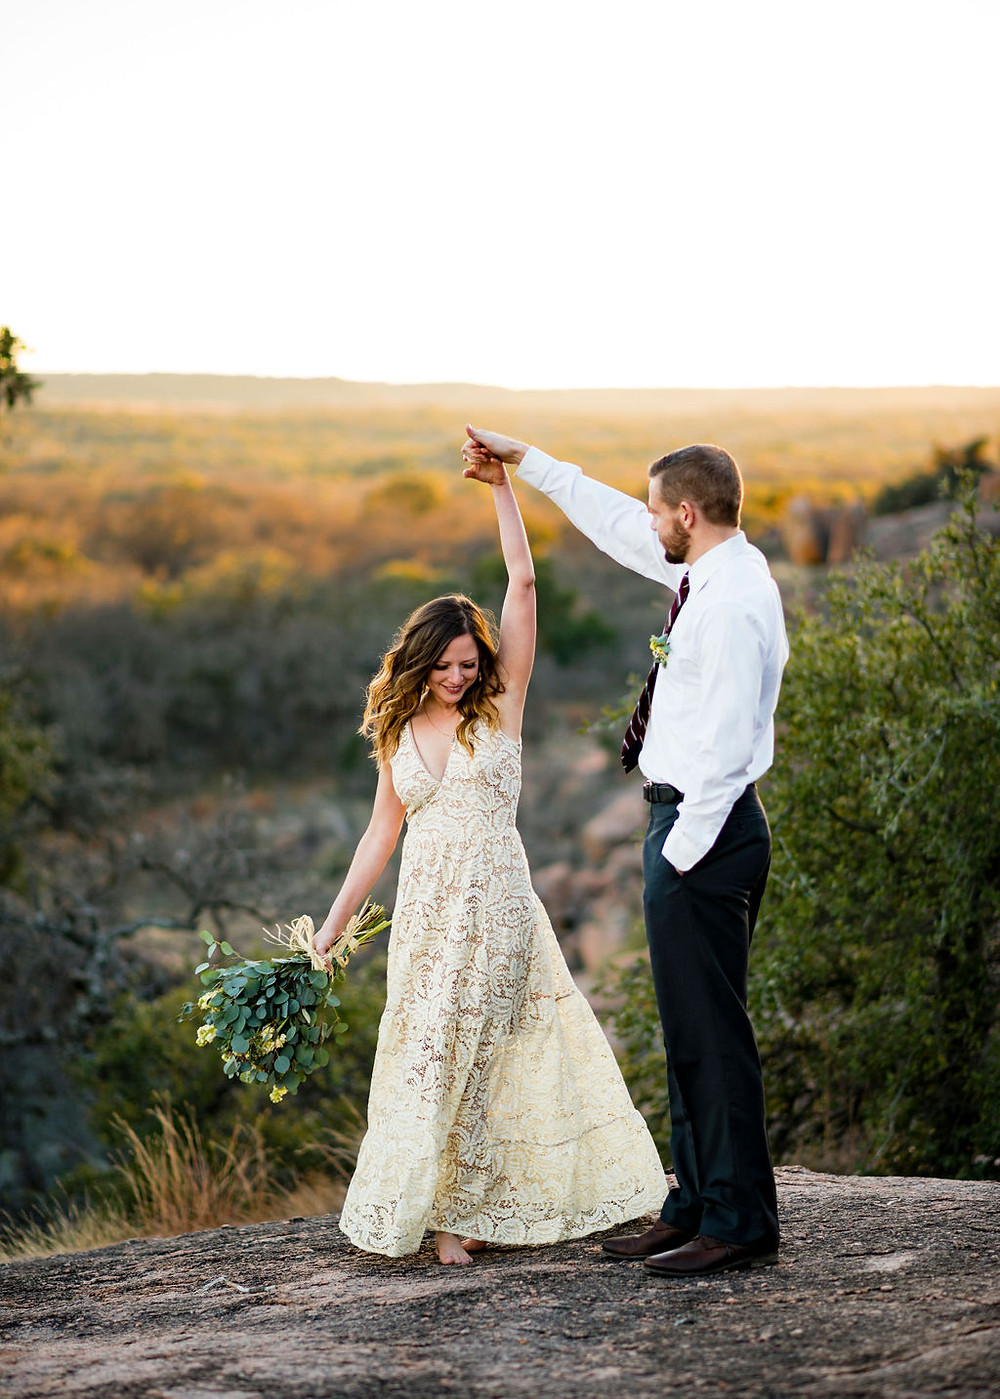 groom spins bride during first dance at their elopement. The bride's tan and white boho dress flairs out and she has a big smile. Bride is holding her bouquet in her free hand. In the background you can see the hill country during golden hour. The couple is on enchanted rock for their elopement.